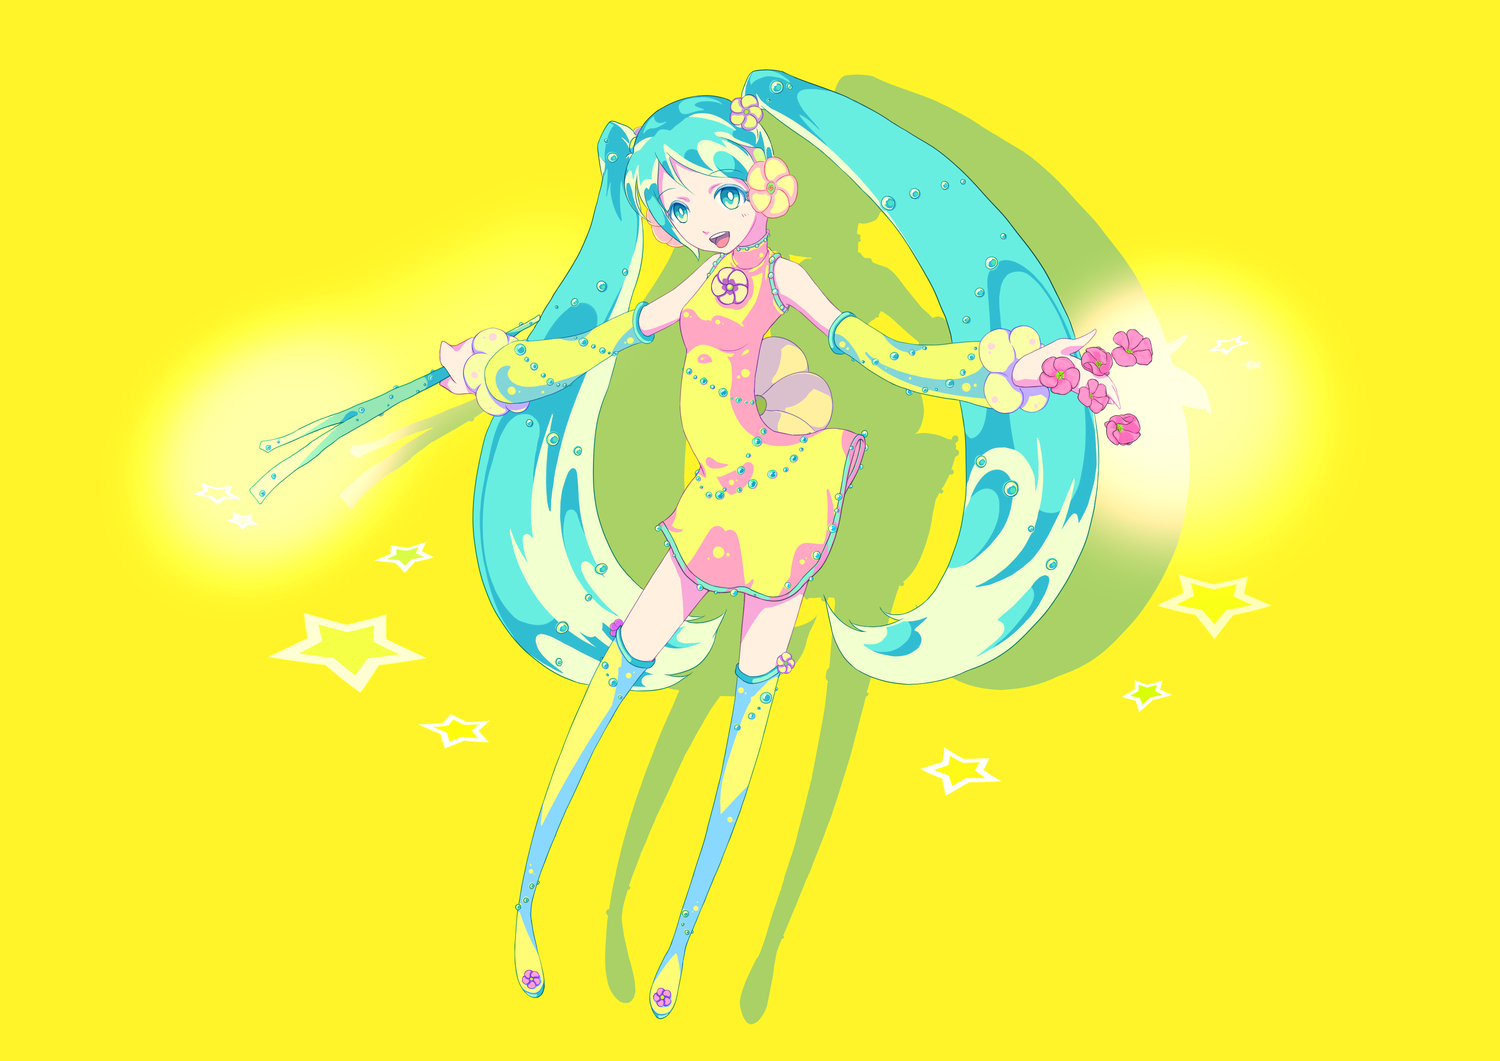 chinese_dress hatsune_miku vocaloid yellow